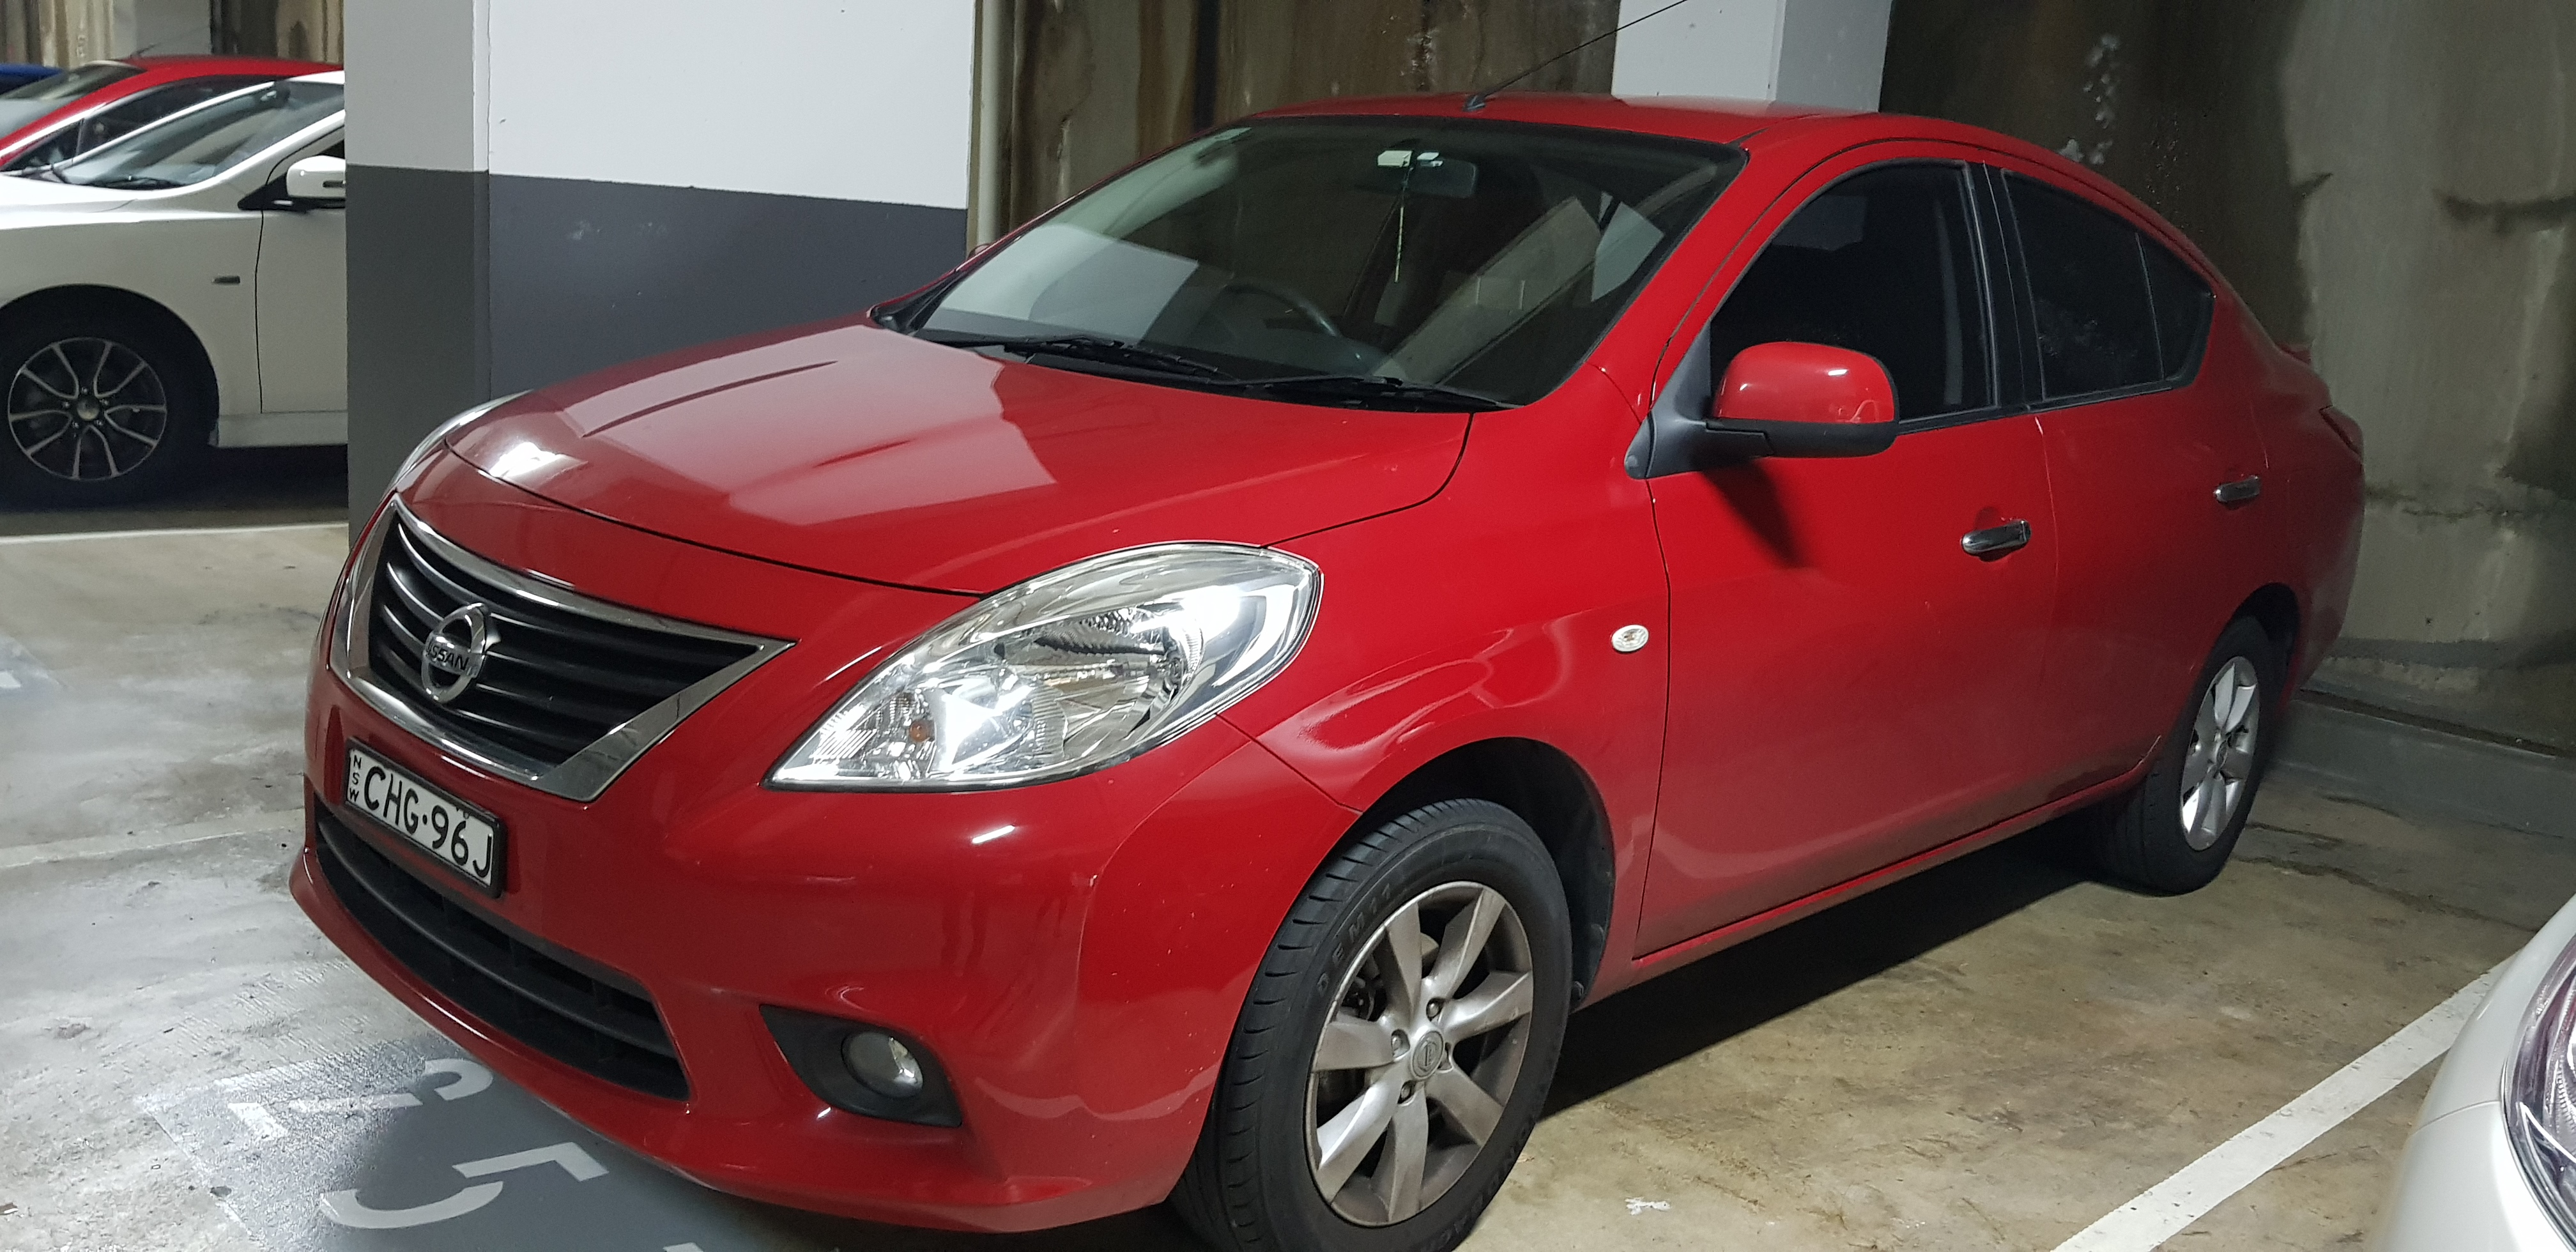 Picture of Bhanu's 2012 Nissan Almera